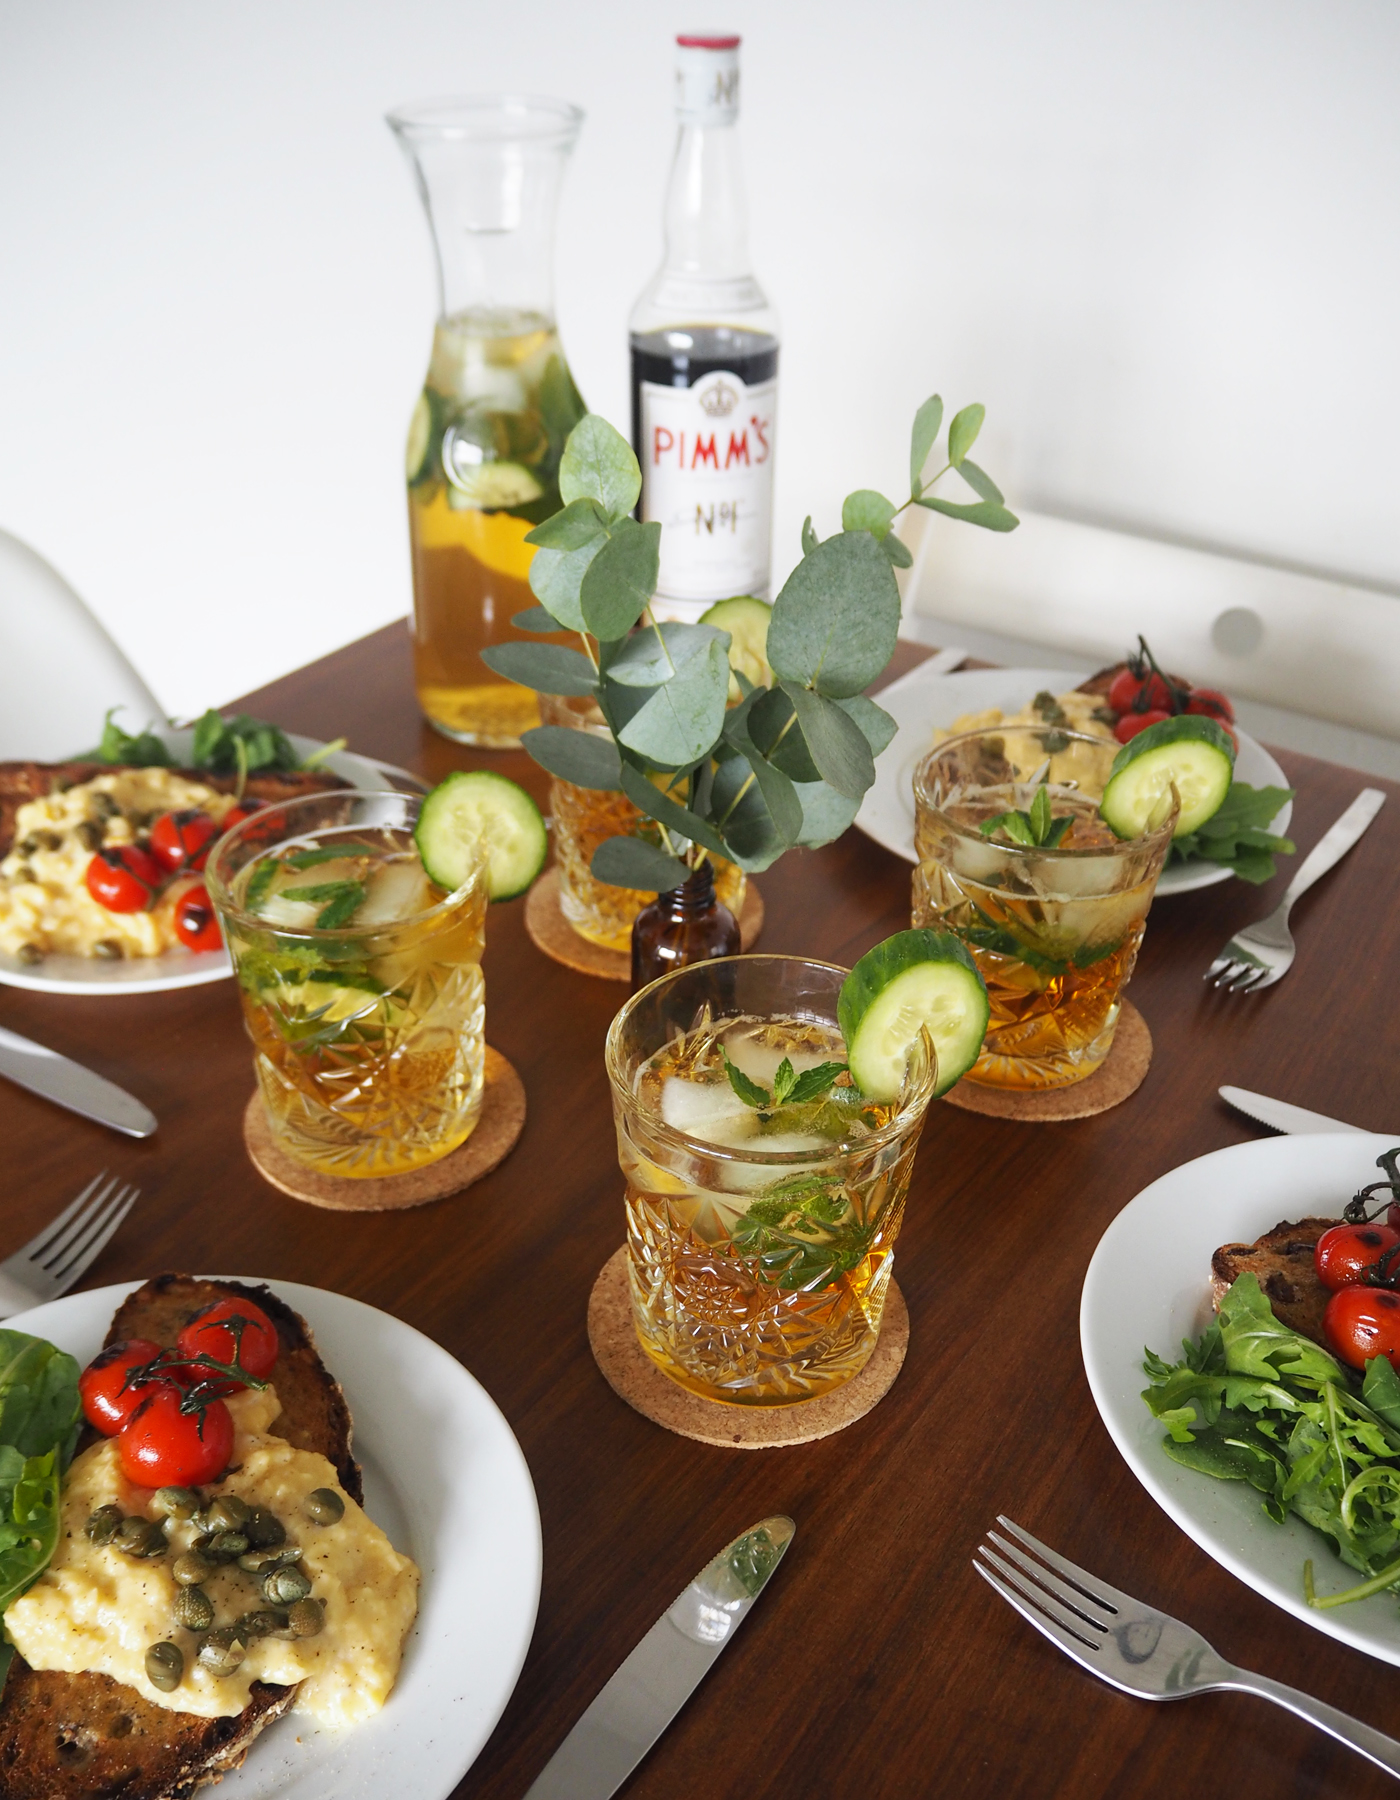 Pimm's gin and tonic recipe